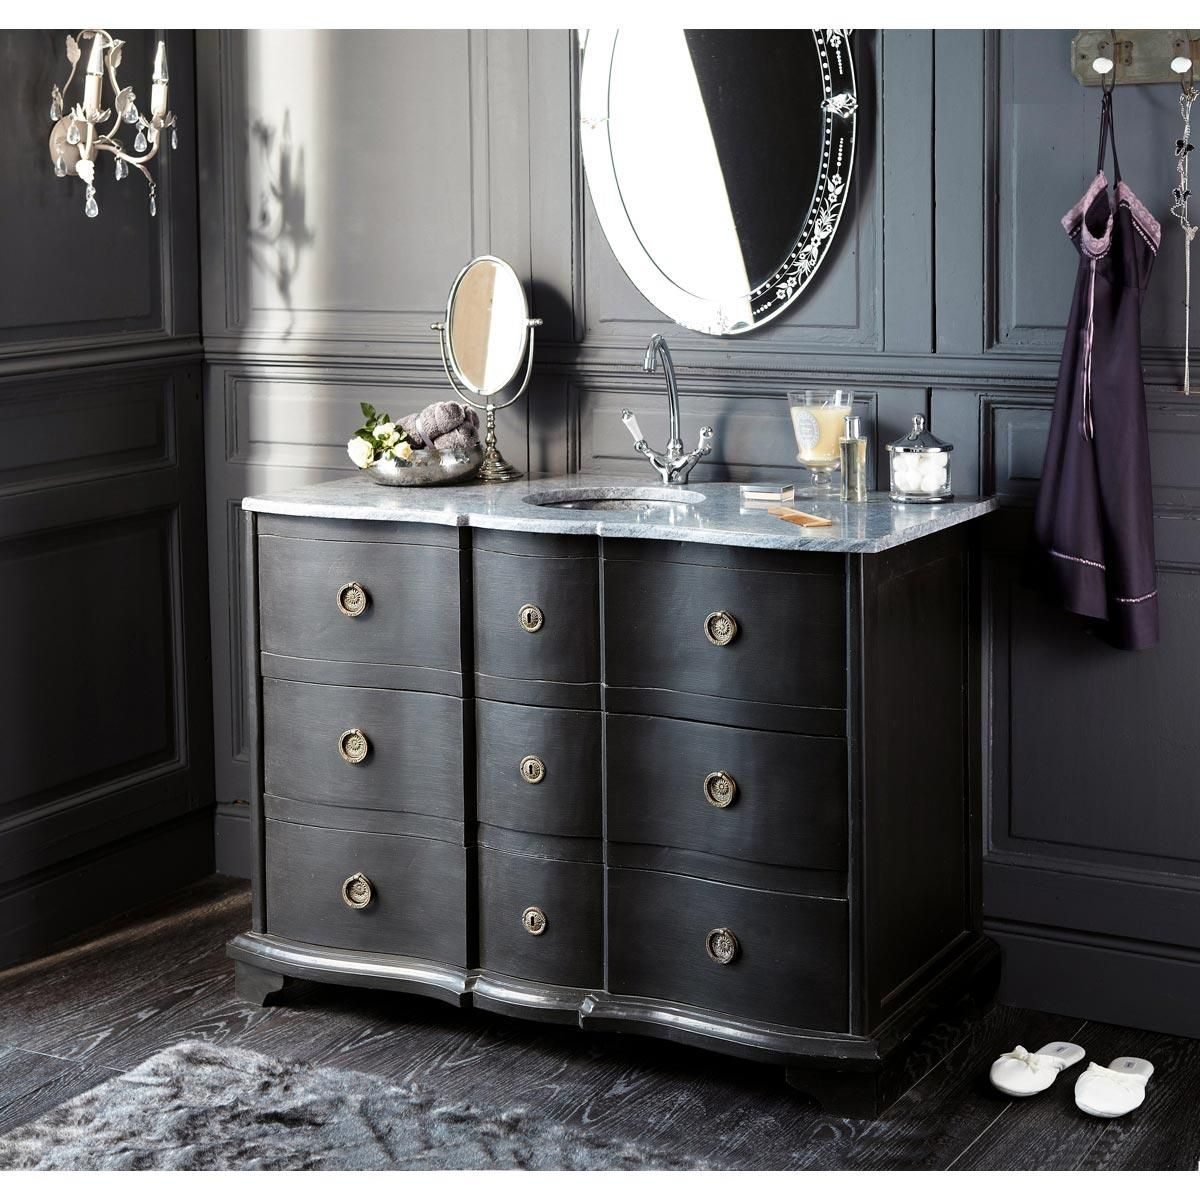 meuble vasque de salle de bain noir meuble vasque marbre noir et vasque. Black Bedroom Furniture Sets. Home Design Ideas